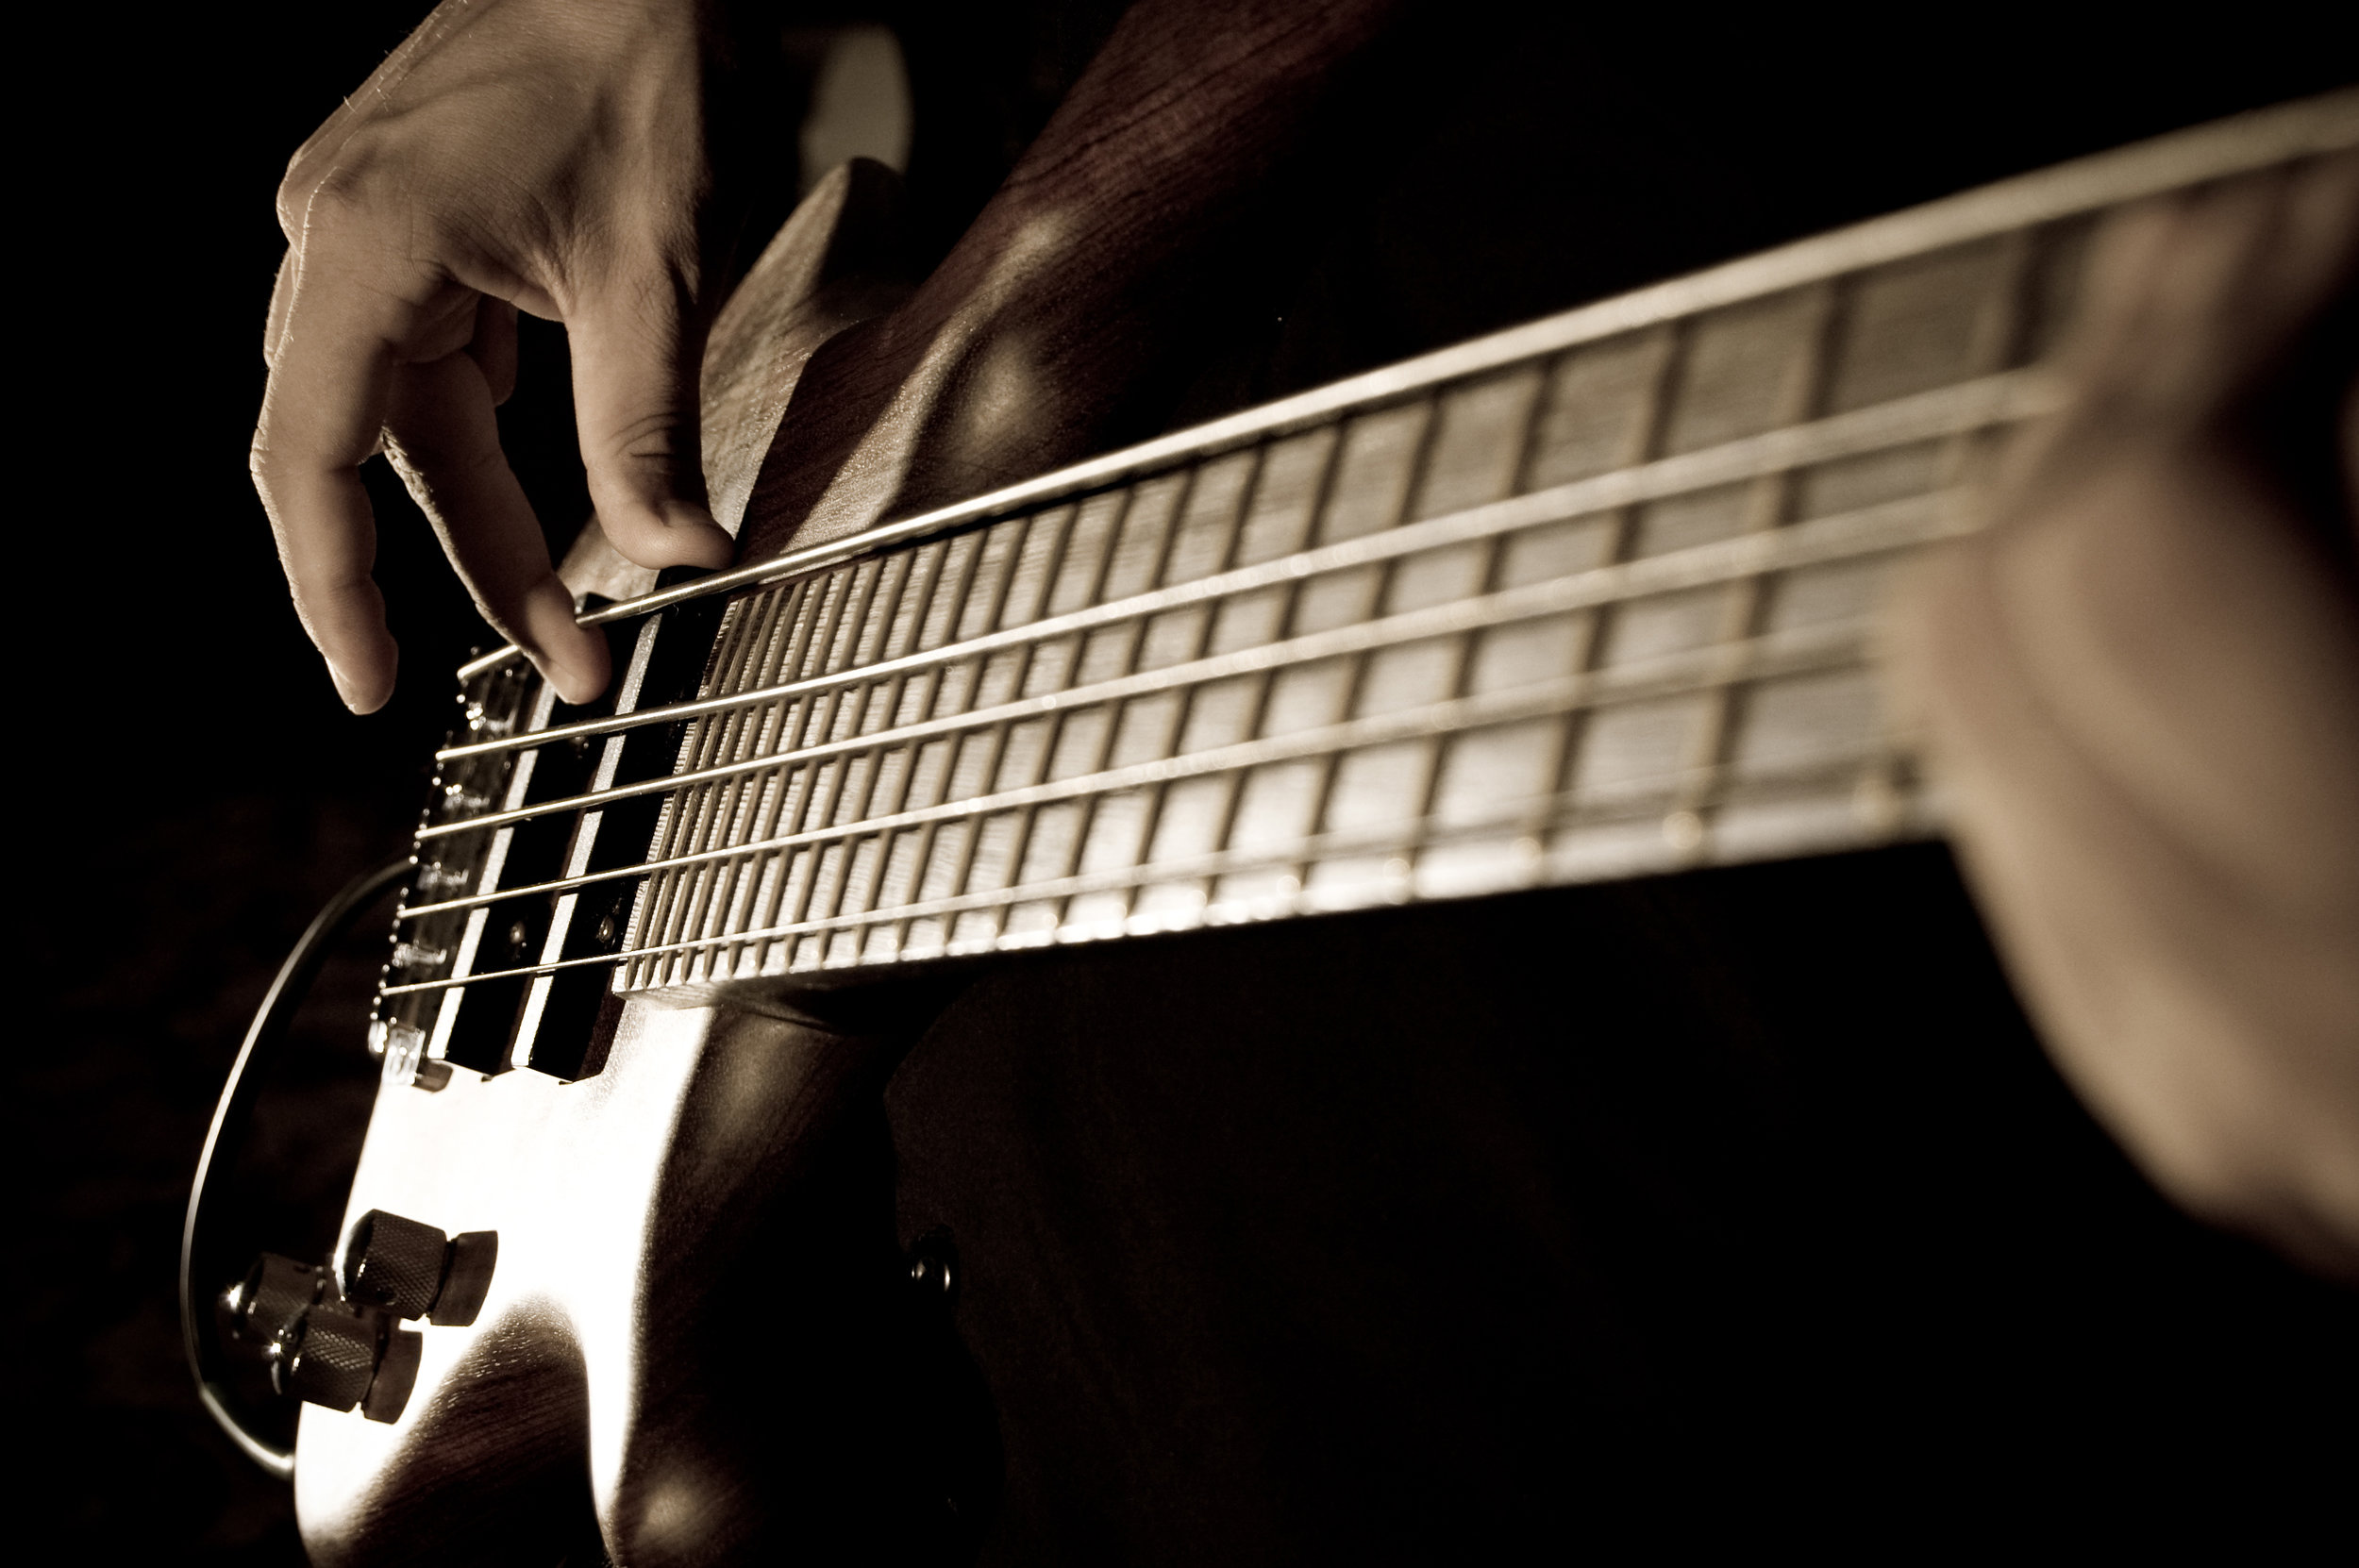 Kevin Gerndt - BassKevin has more than 40 years' experience playing bass in wide ranging musical genre's and bands; acoustic / folk, blues, rock, jazz, originals (in mold of Chicago), jazz/rock/fusion, pop, show tunes, worship music. Has recorded a live Jazz album (